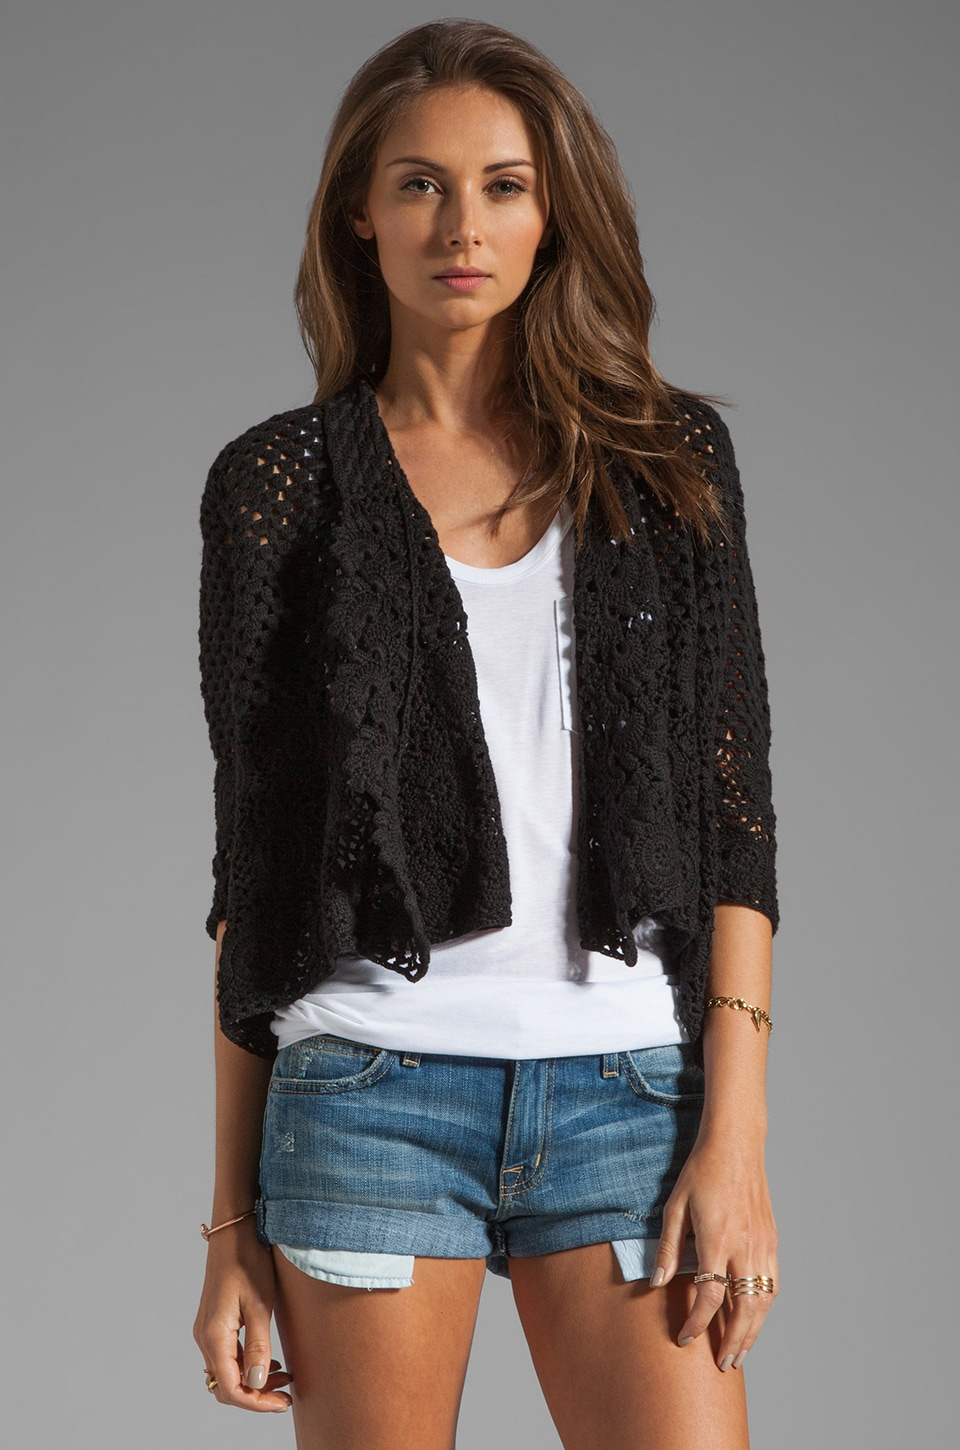 Autumn Cashmere Crochet Drape Sweater in Black